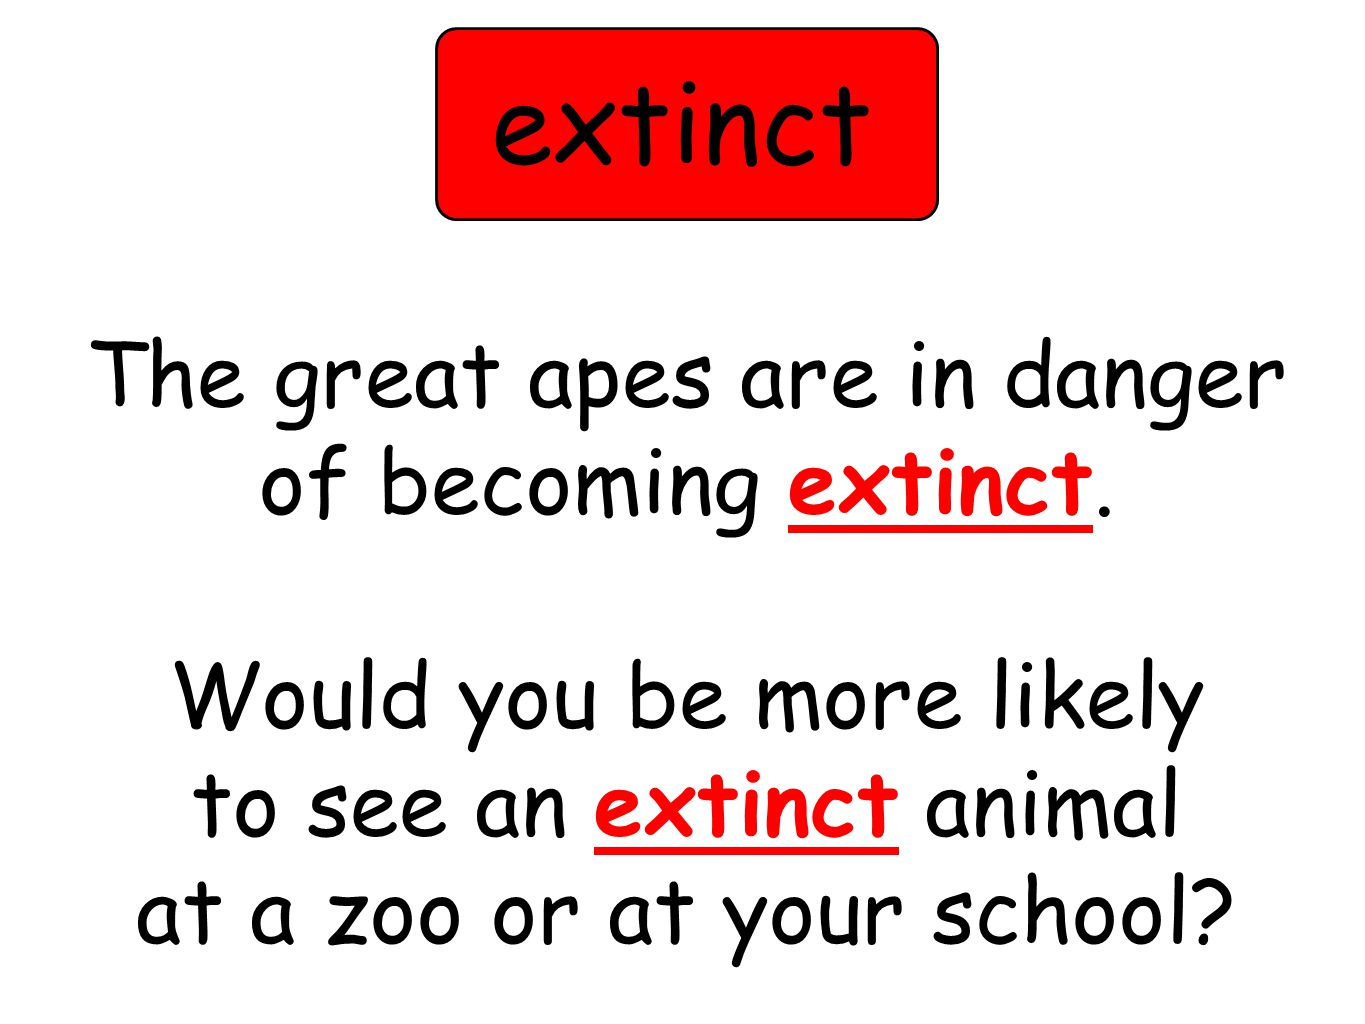 The great apes are in danger of becoming extinct.